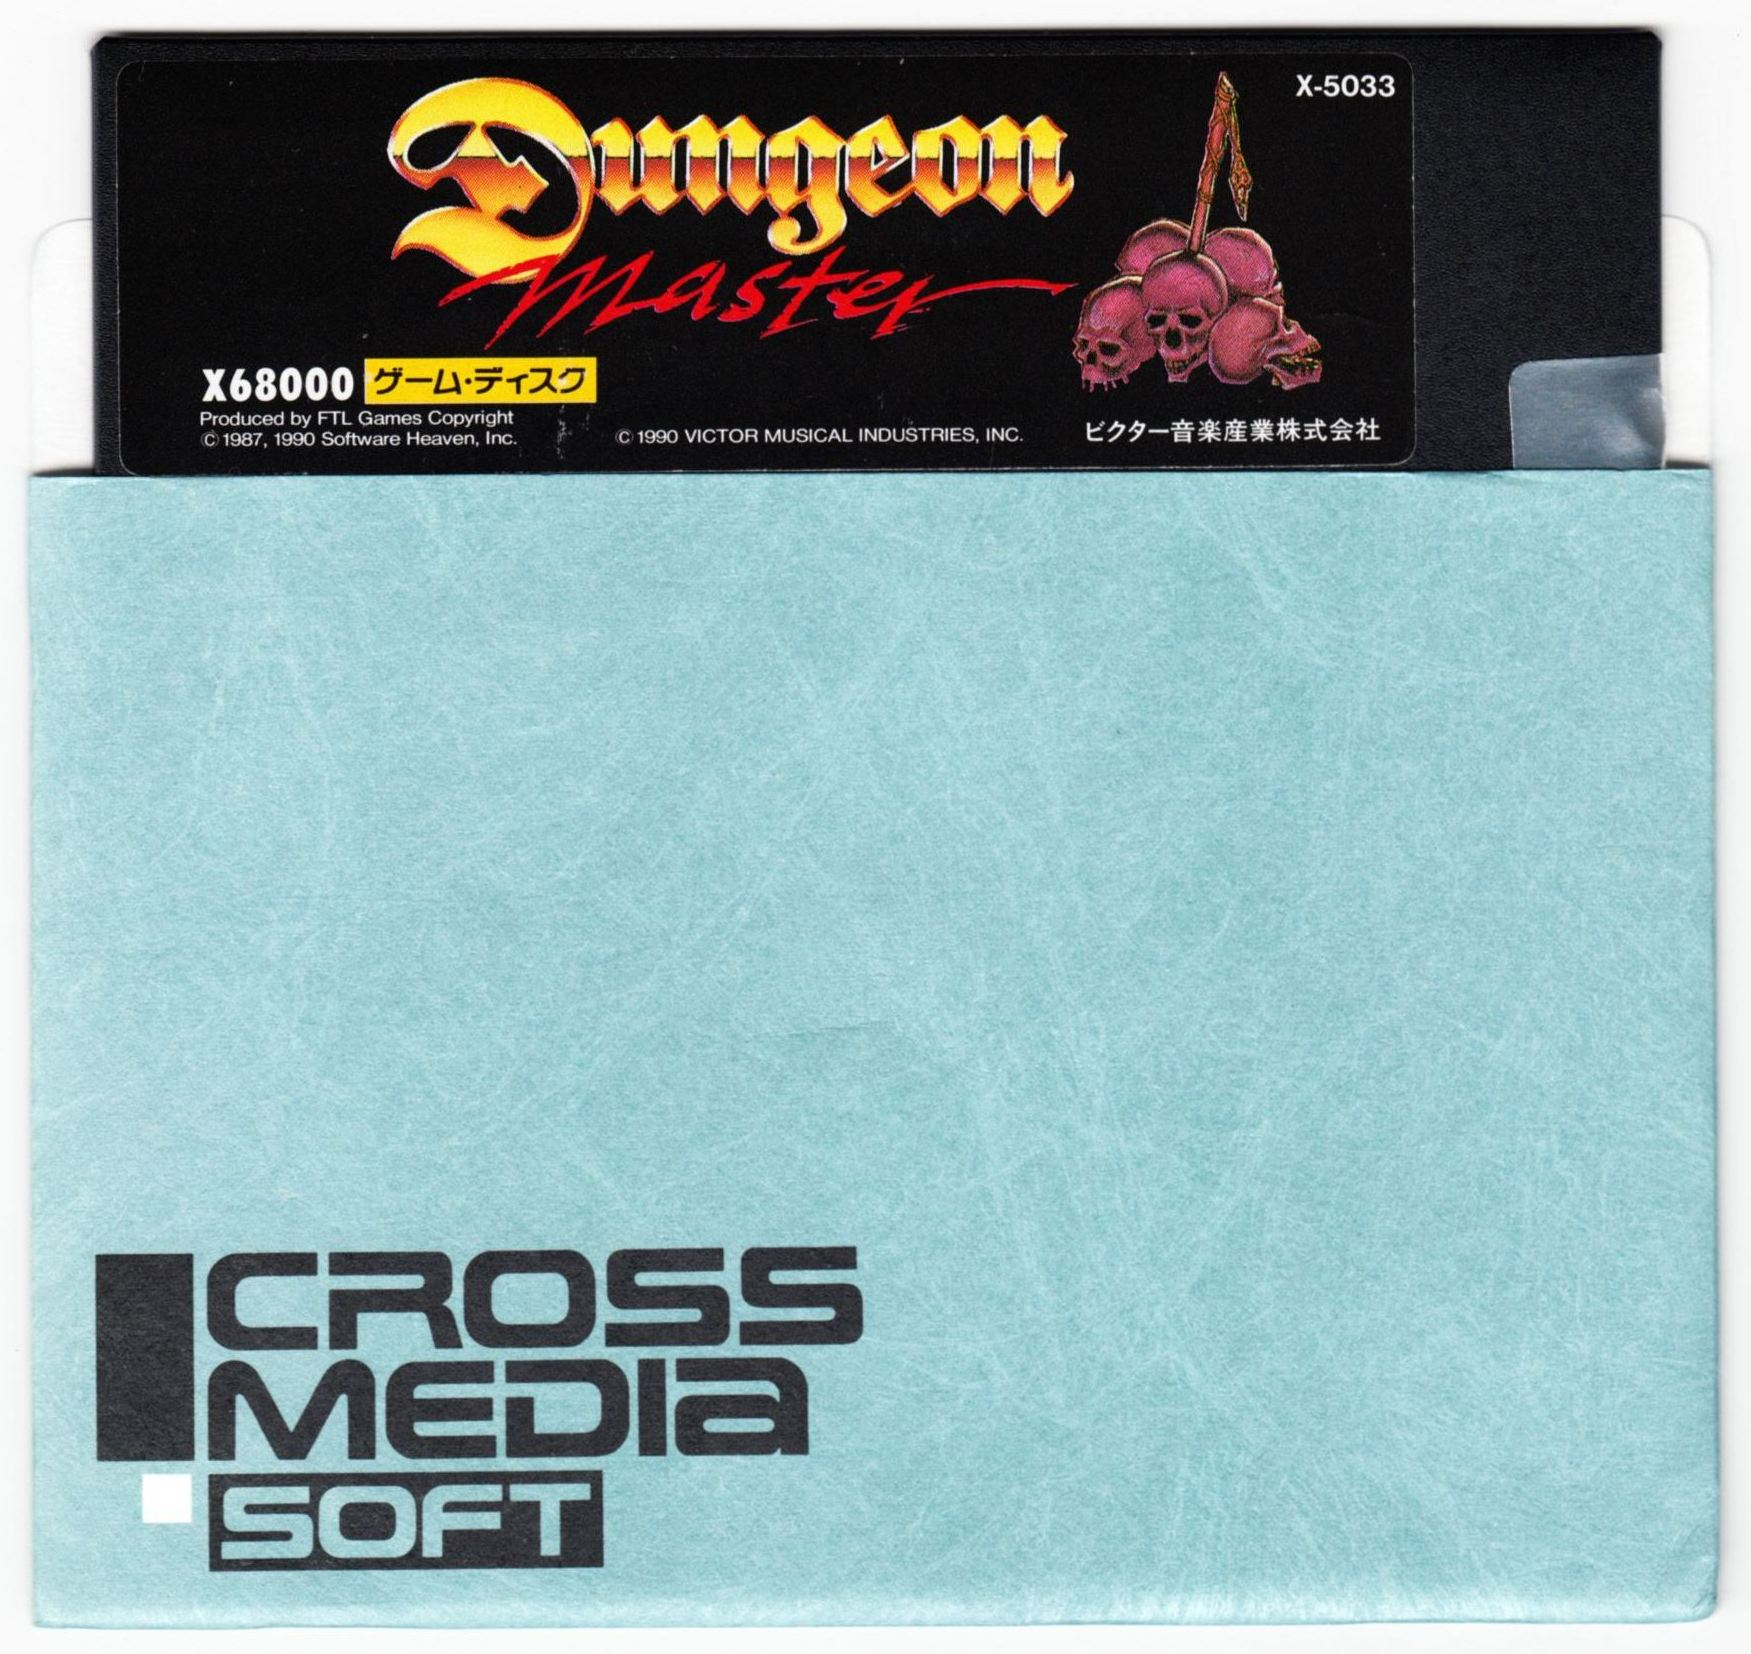 Game - Dungeon Master - JP - X68000 - Game Disk - Front - Scan